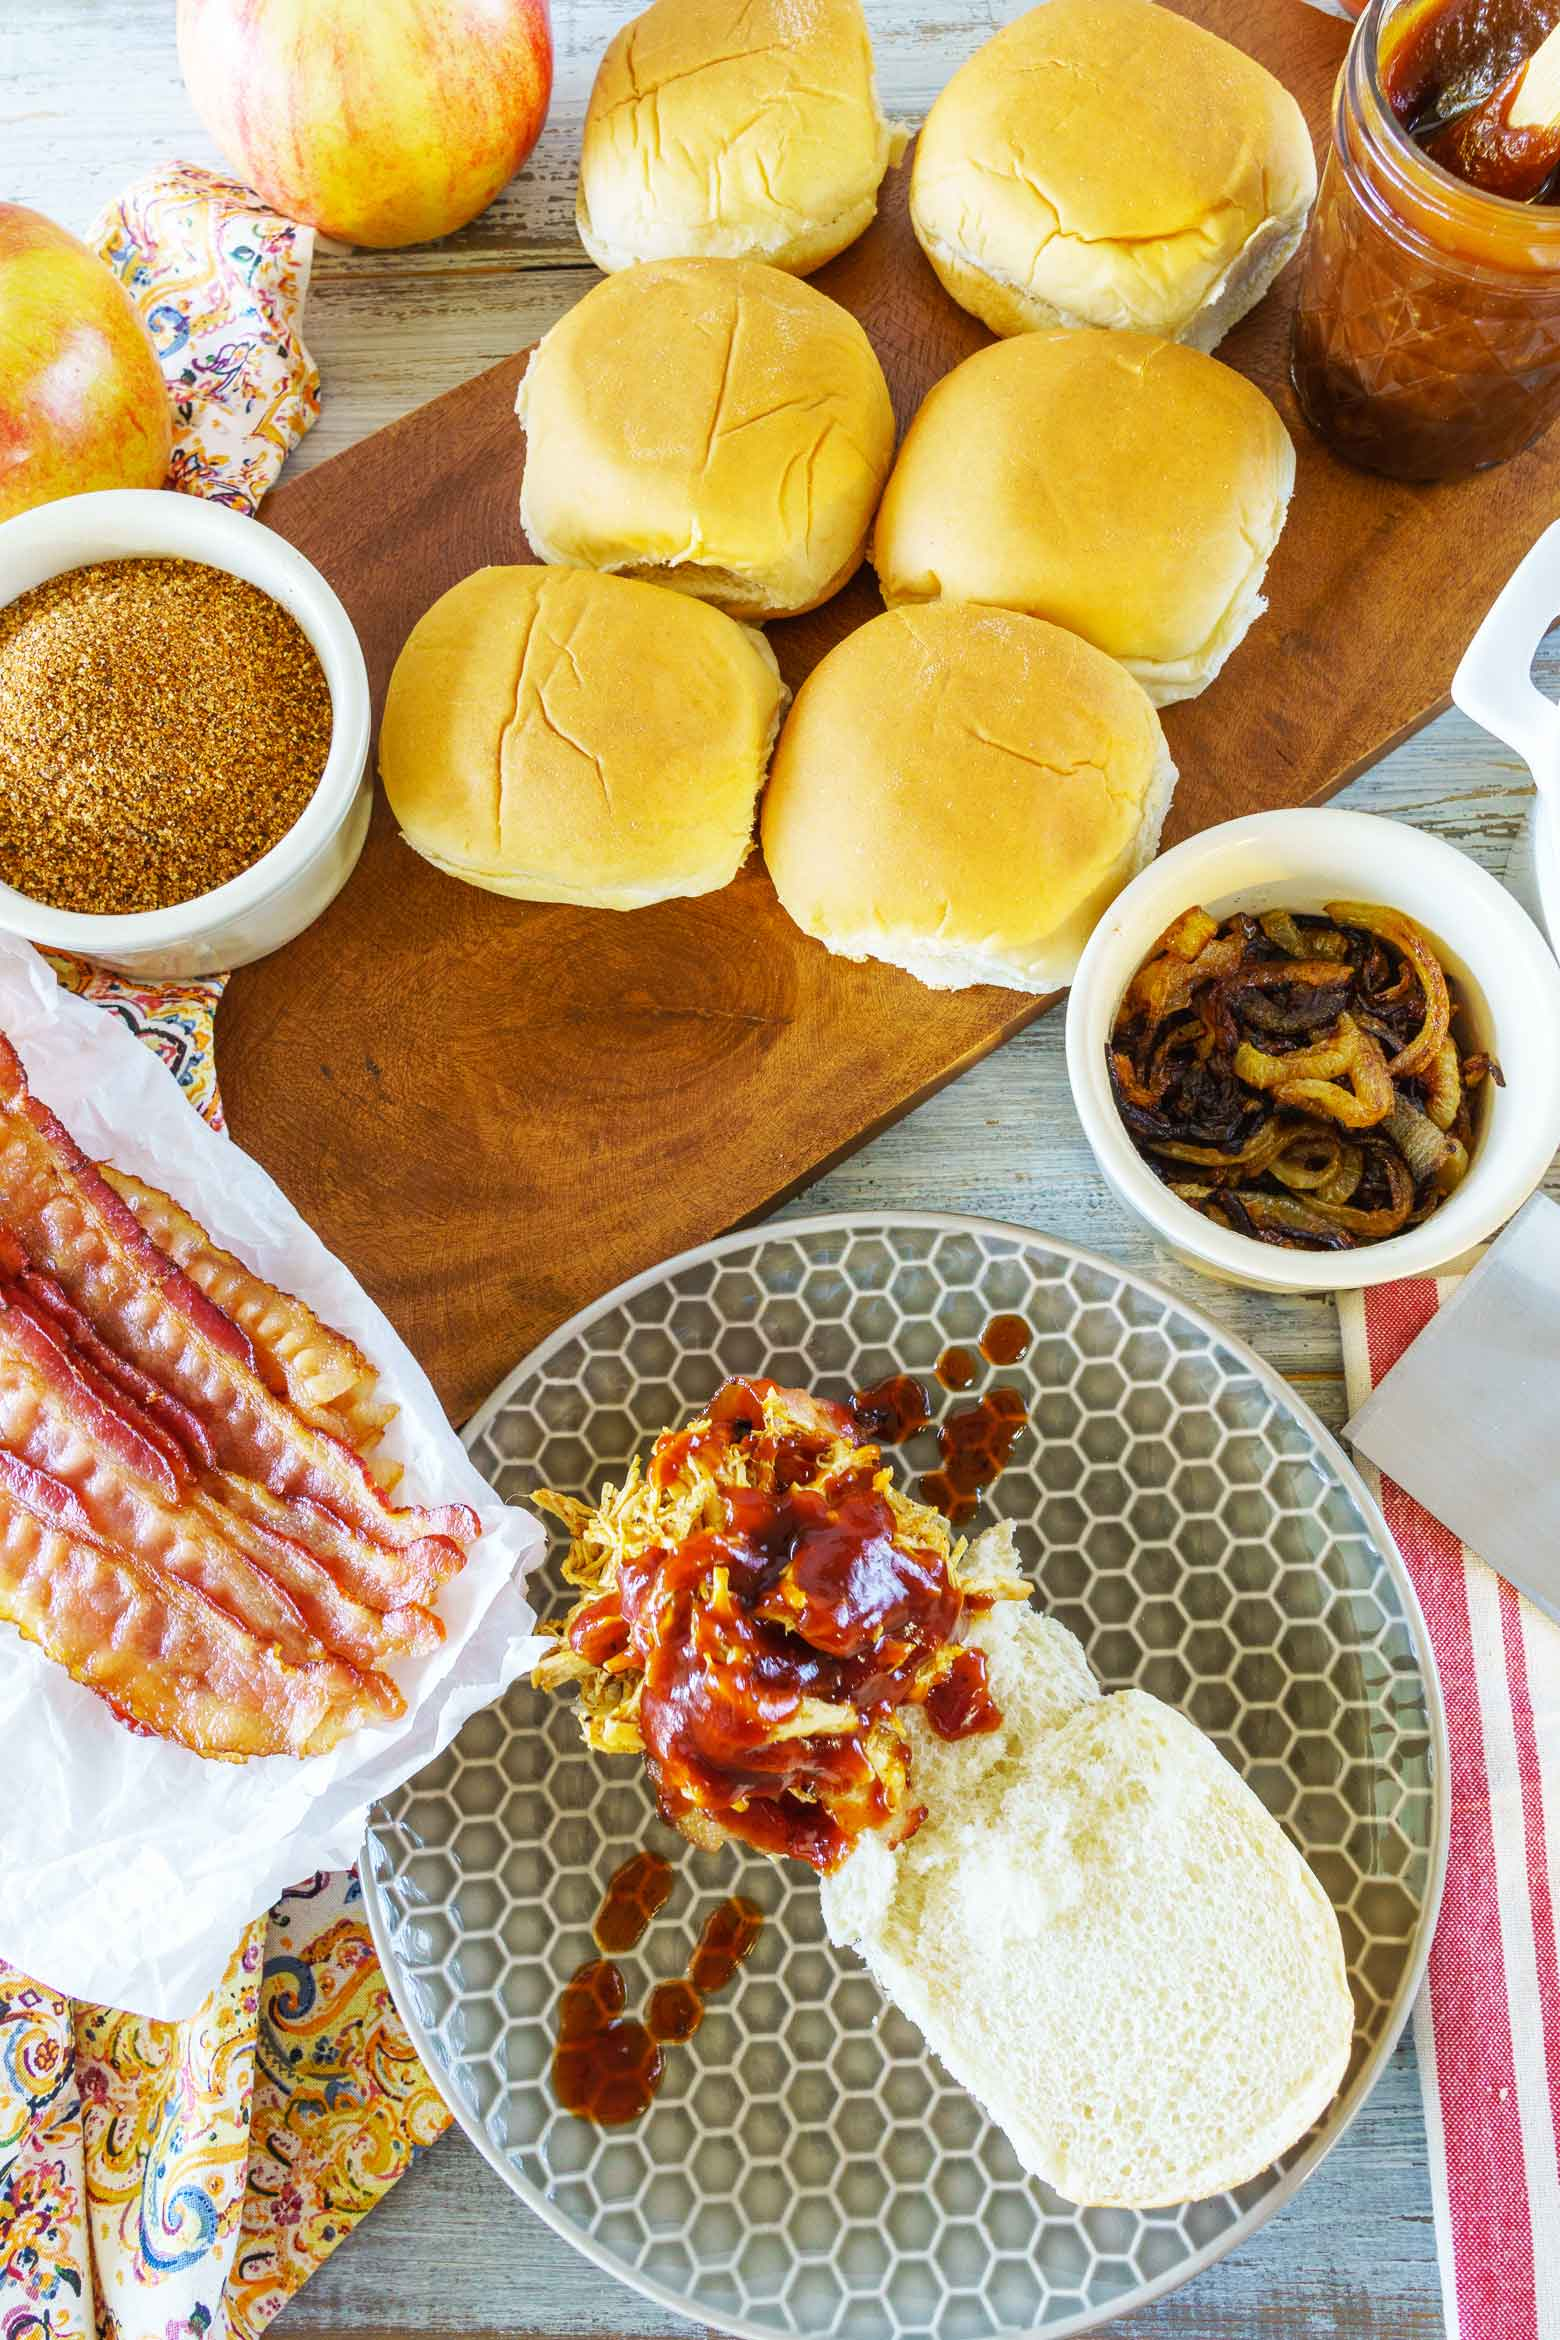 Pulled chicken sliders will be your new favorite snack on game day! They also make a quick week night meal full of flavor. Stacked with caramelized onion, pulled chicken breast smothered in a spicy dry rub, maple bbq sauce and a special ingredient you'd never guess! All made in a pressure cooker to save you time!